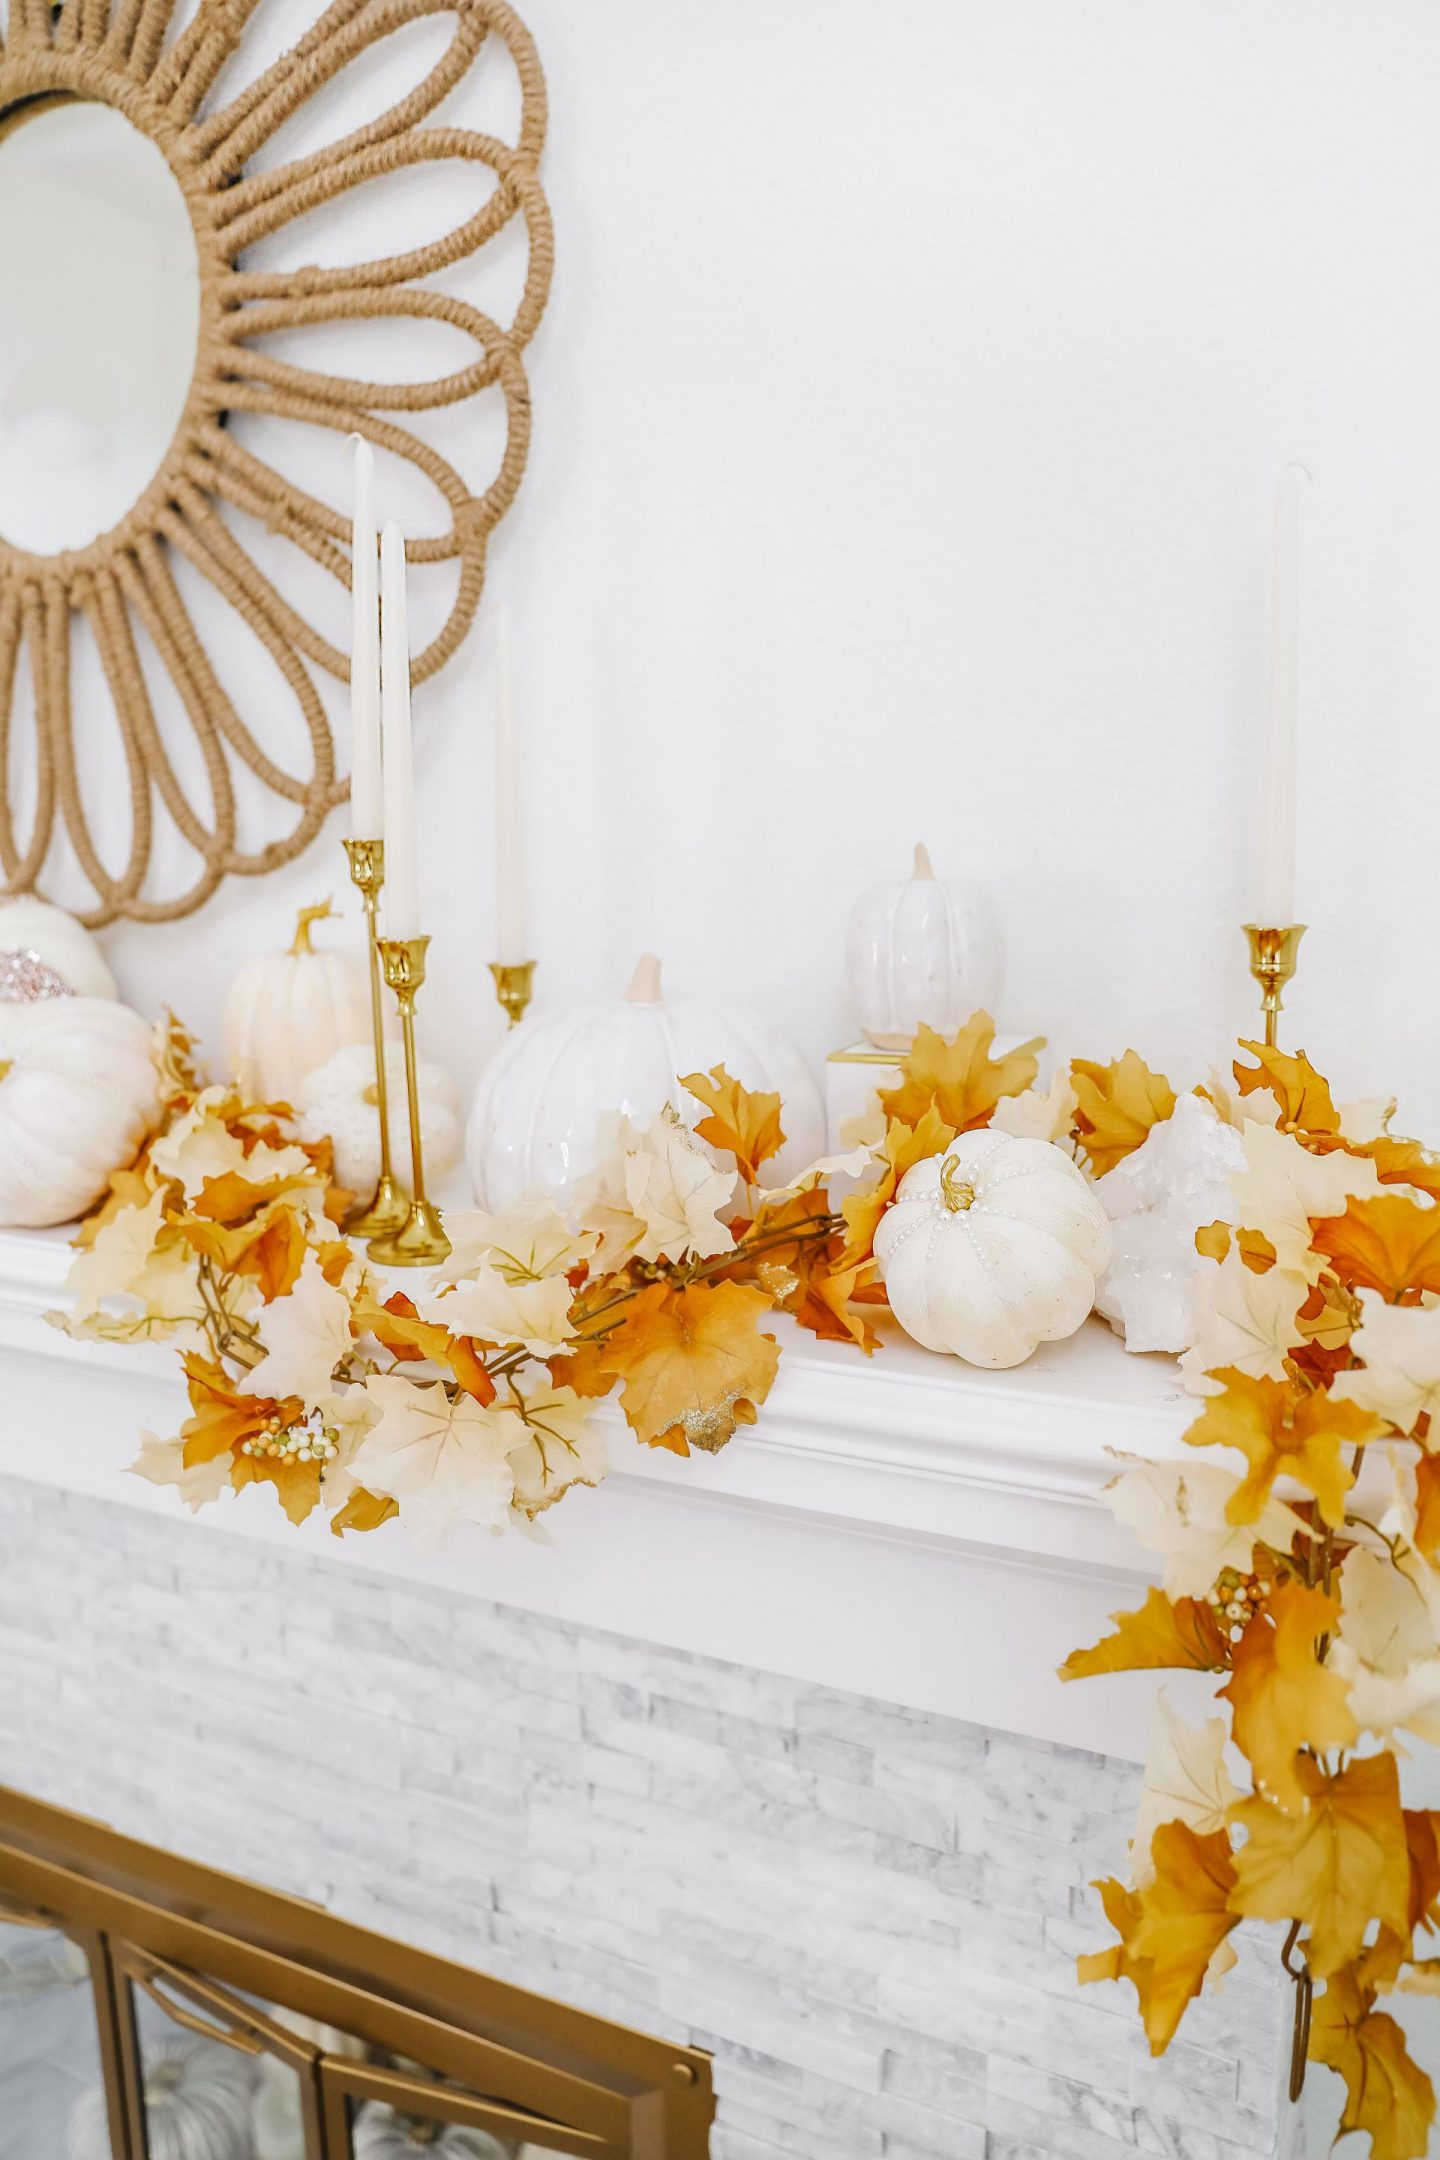 Easy glam neutral fall mantel décor update ideas. Glass pumpkins, voluspa pumpkin spice candles.